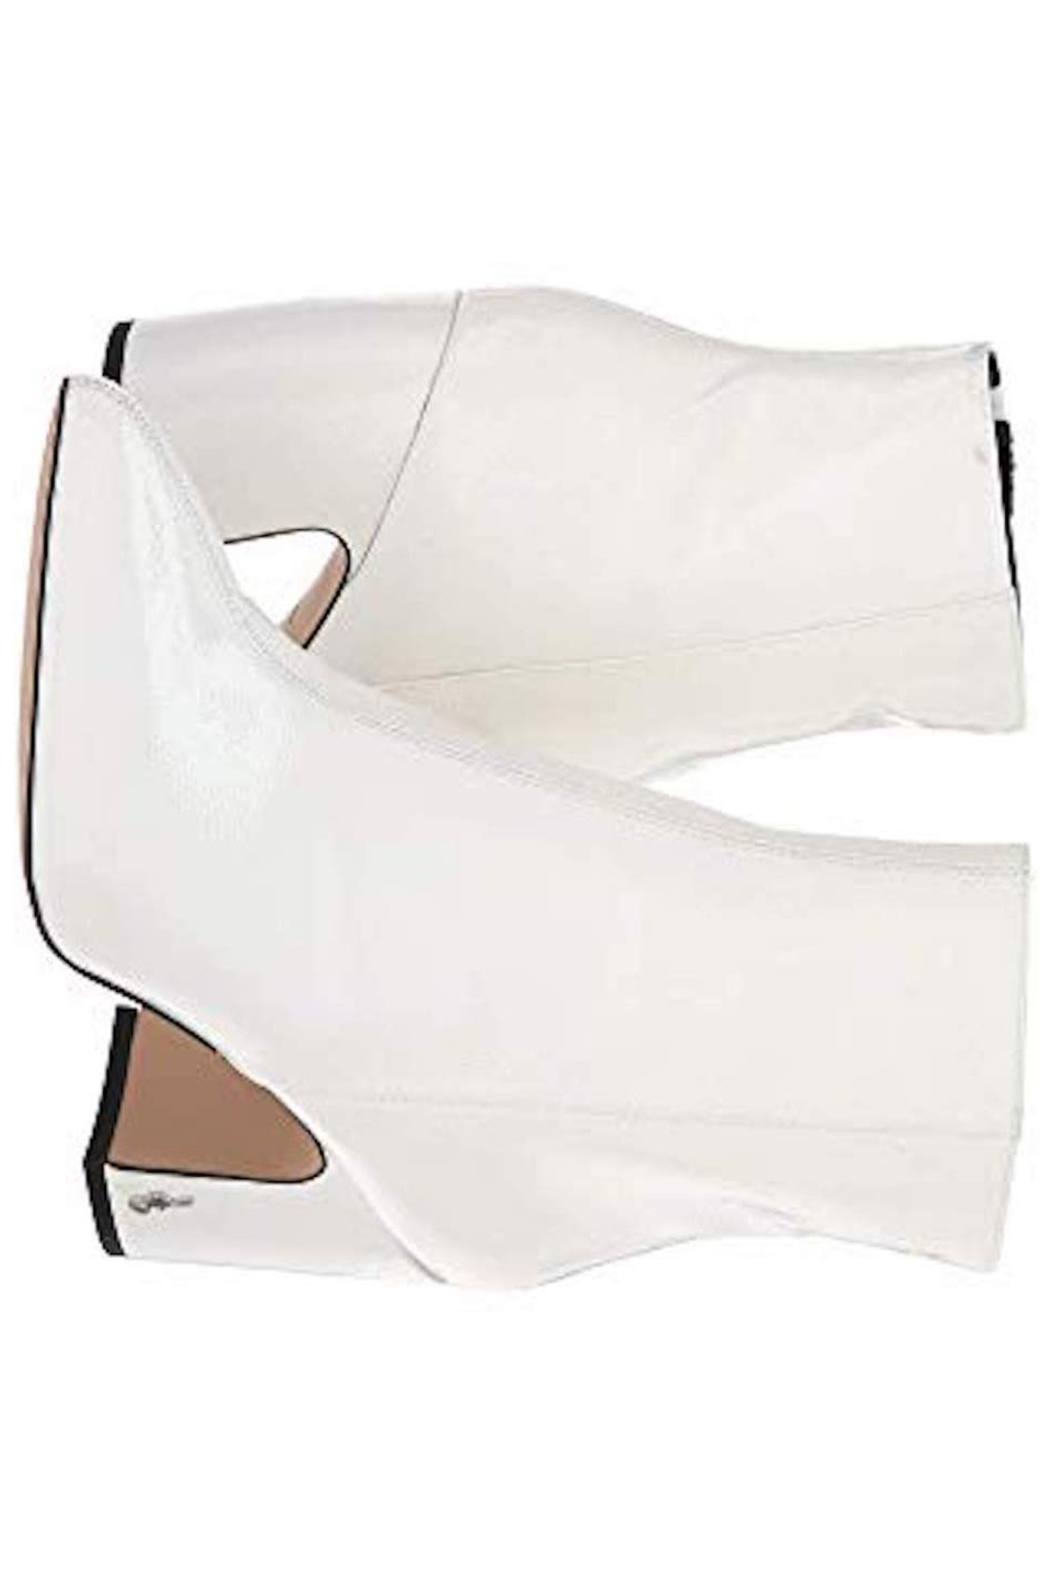 Sam Edelman Hilty White Bootie - Side Cropped Image